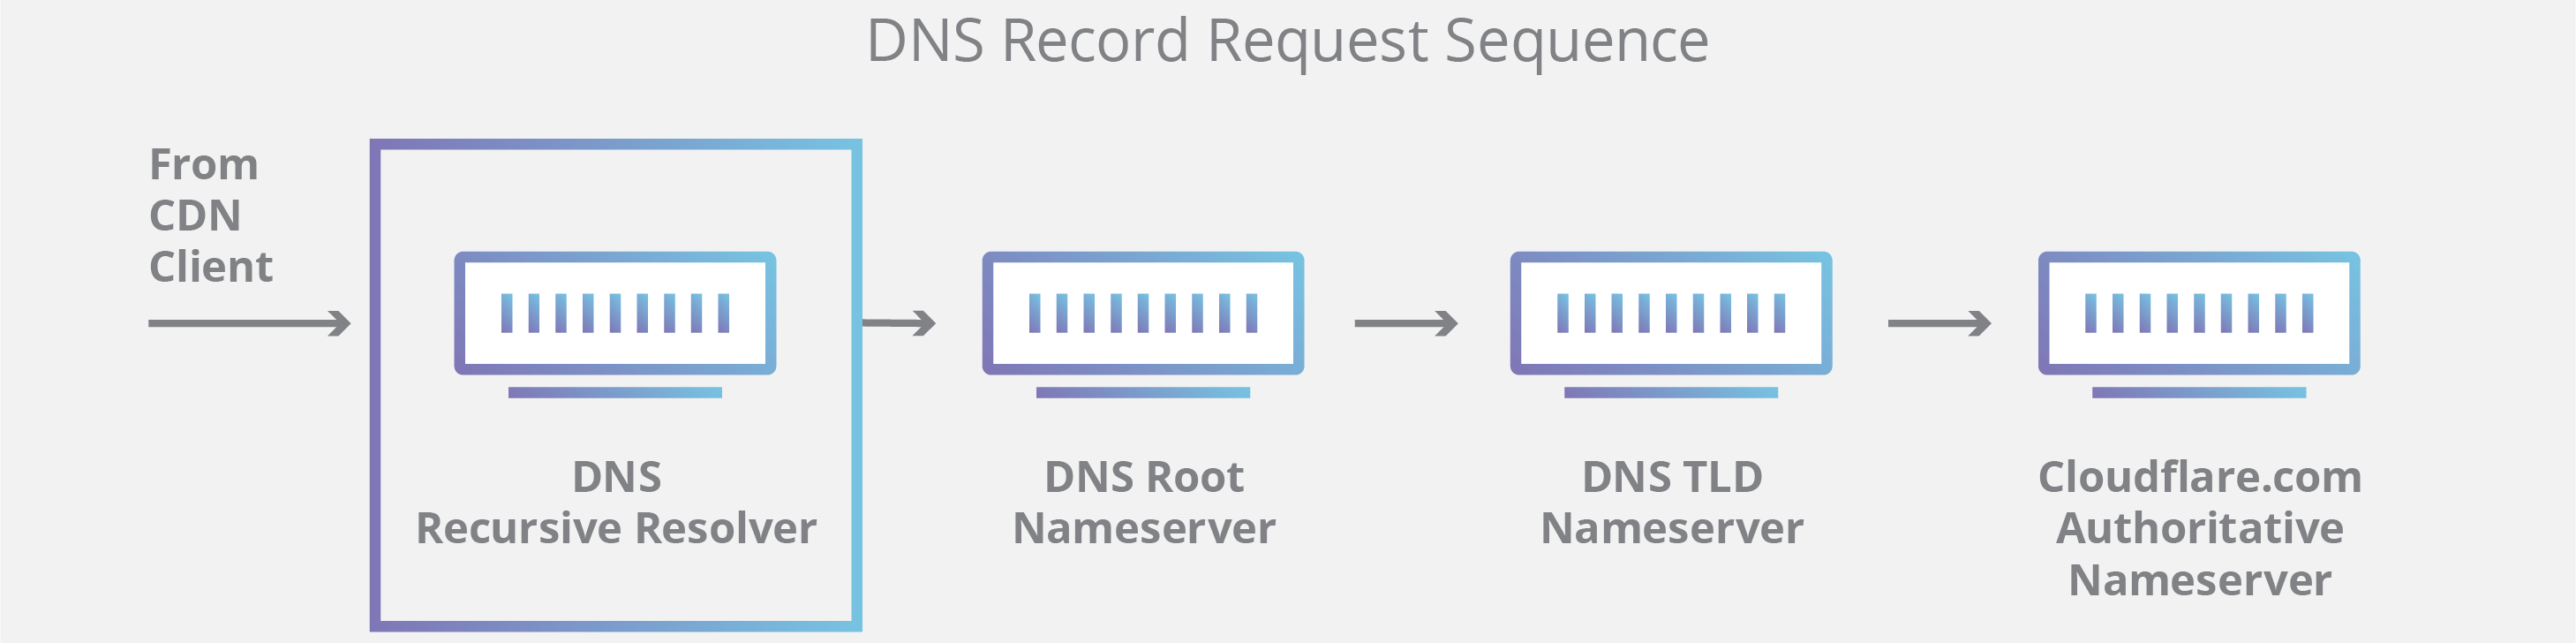 How DNS works - the 10 steps in a DNS query